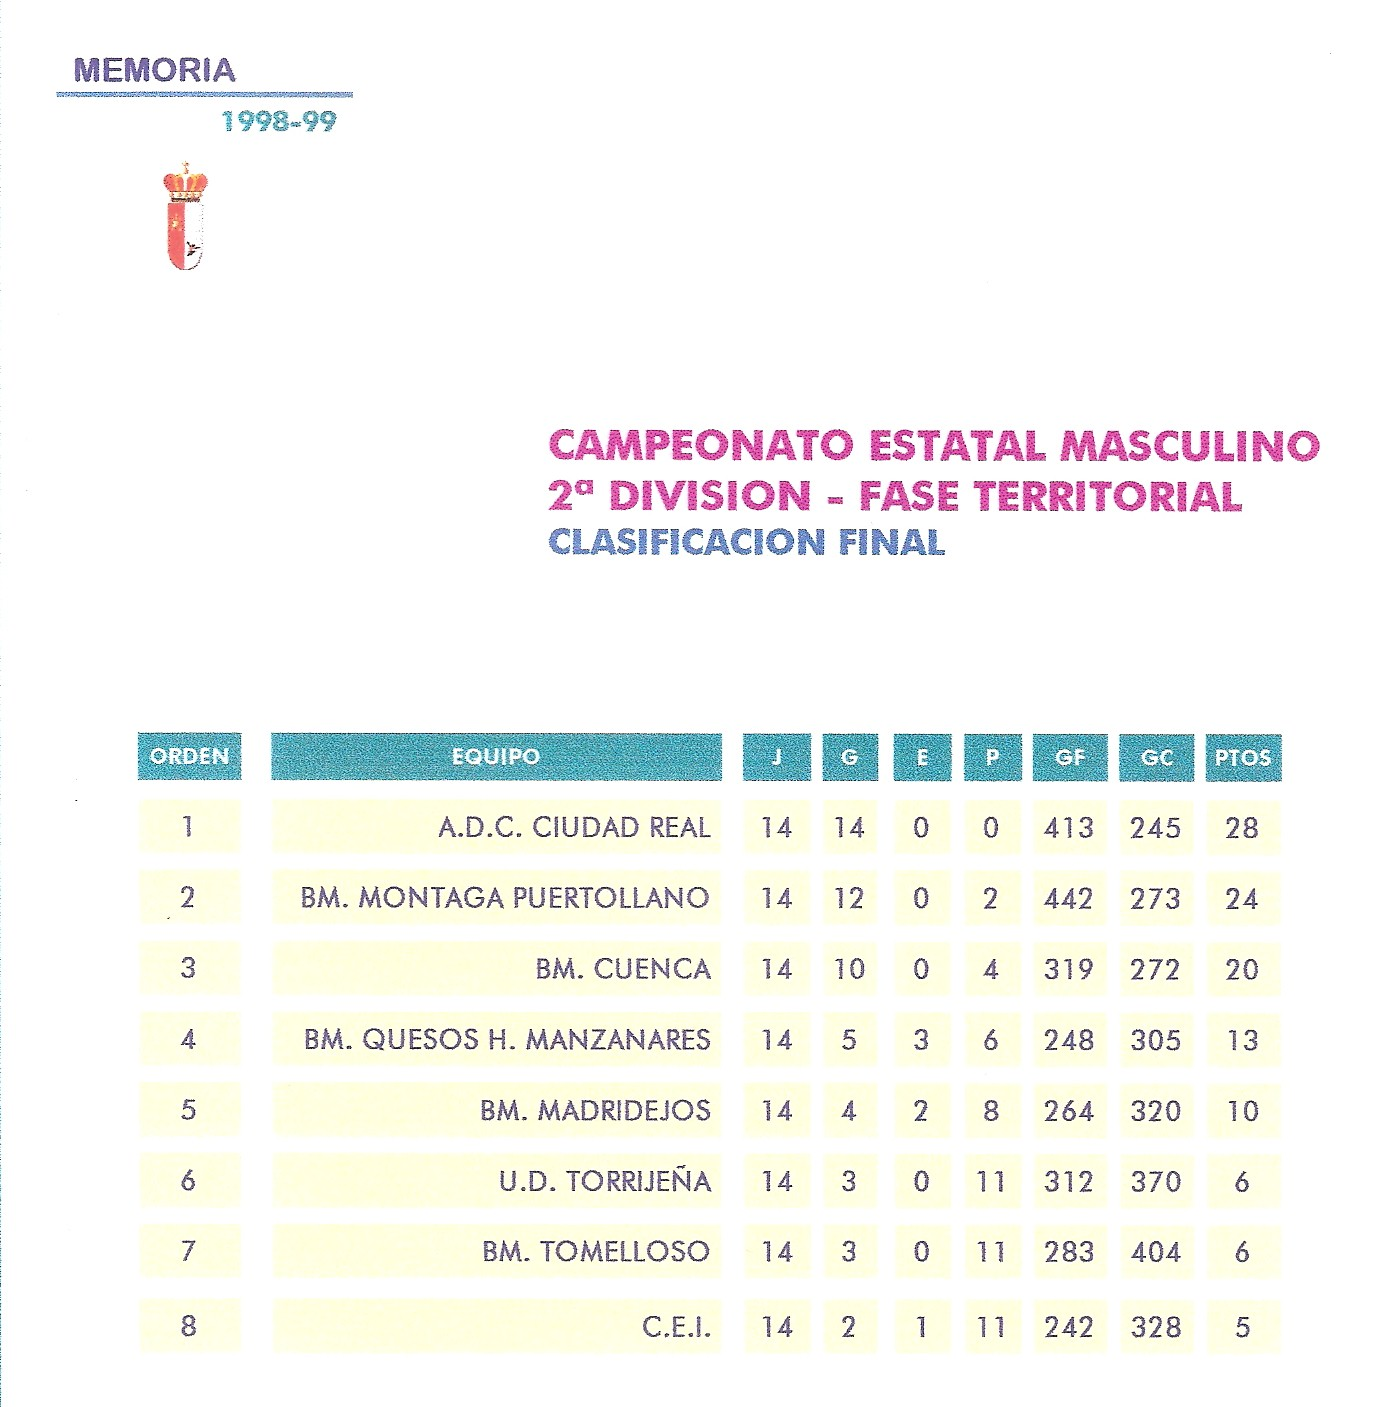 Balonmano torrijos clasificaci n 2 divisi n auton mica for Division 2 table 98 99